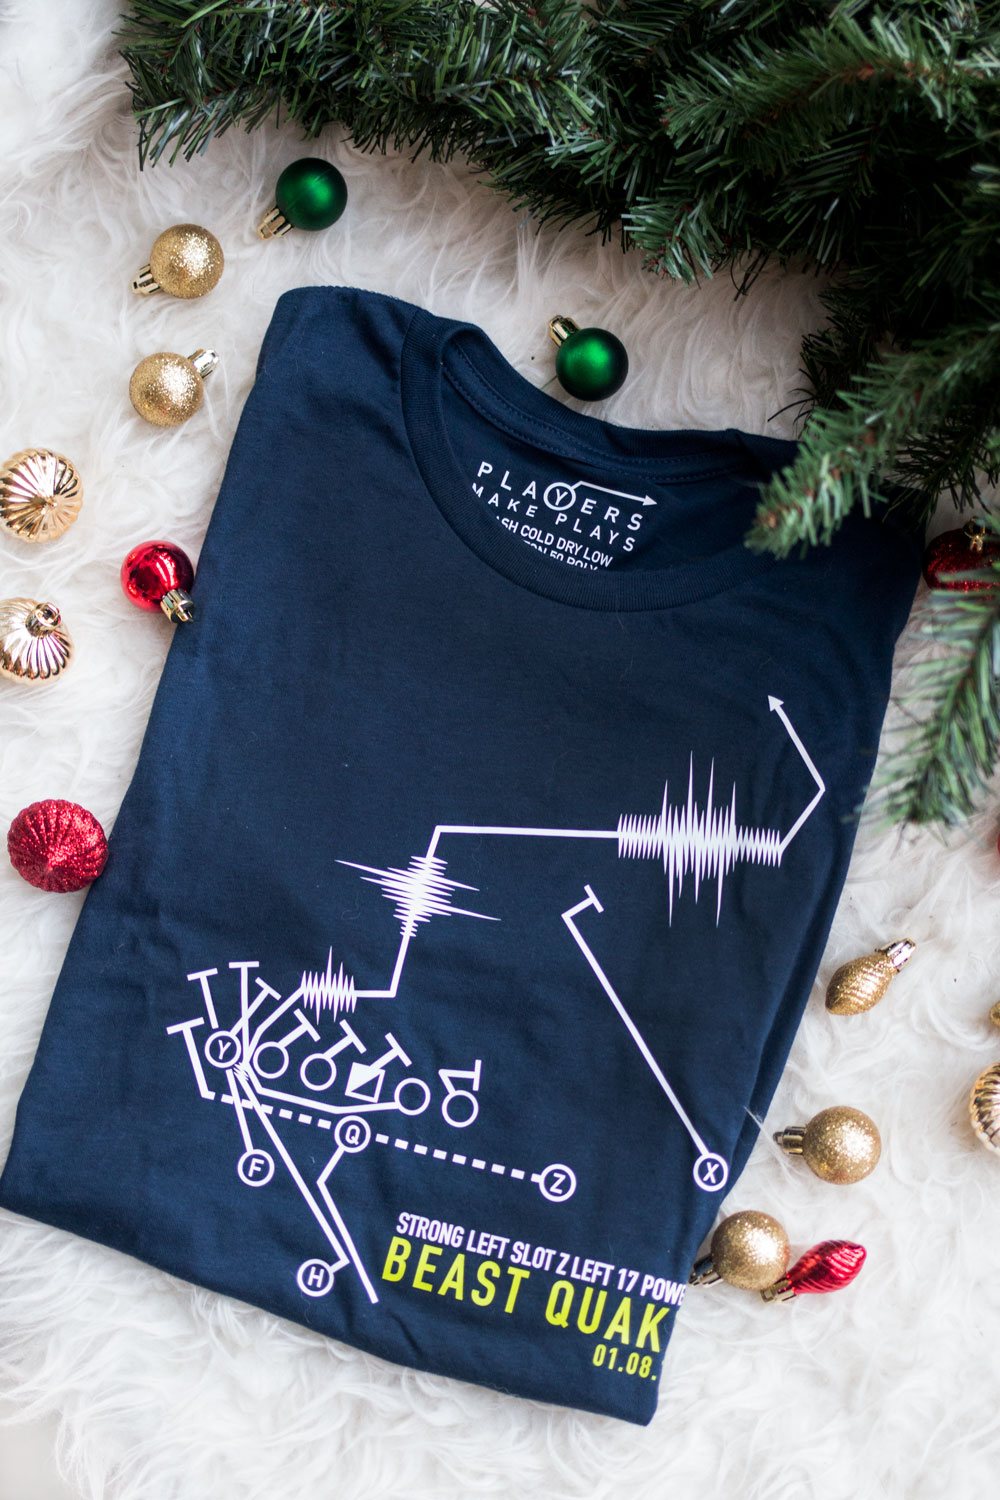 Gifts for Seahawks Fans: Players Make Plays Beast Quake T-Shirt // Hello Rigby Seattle Fashion Blog